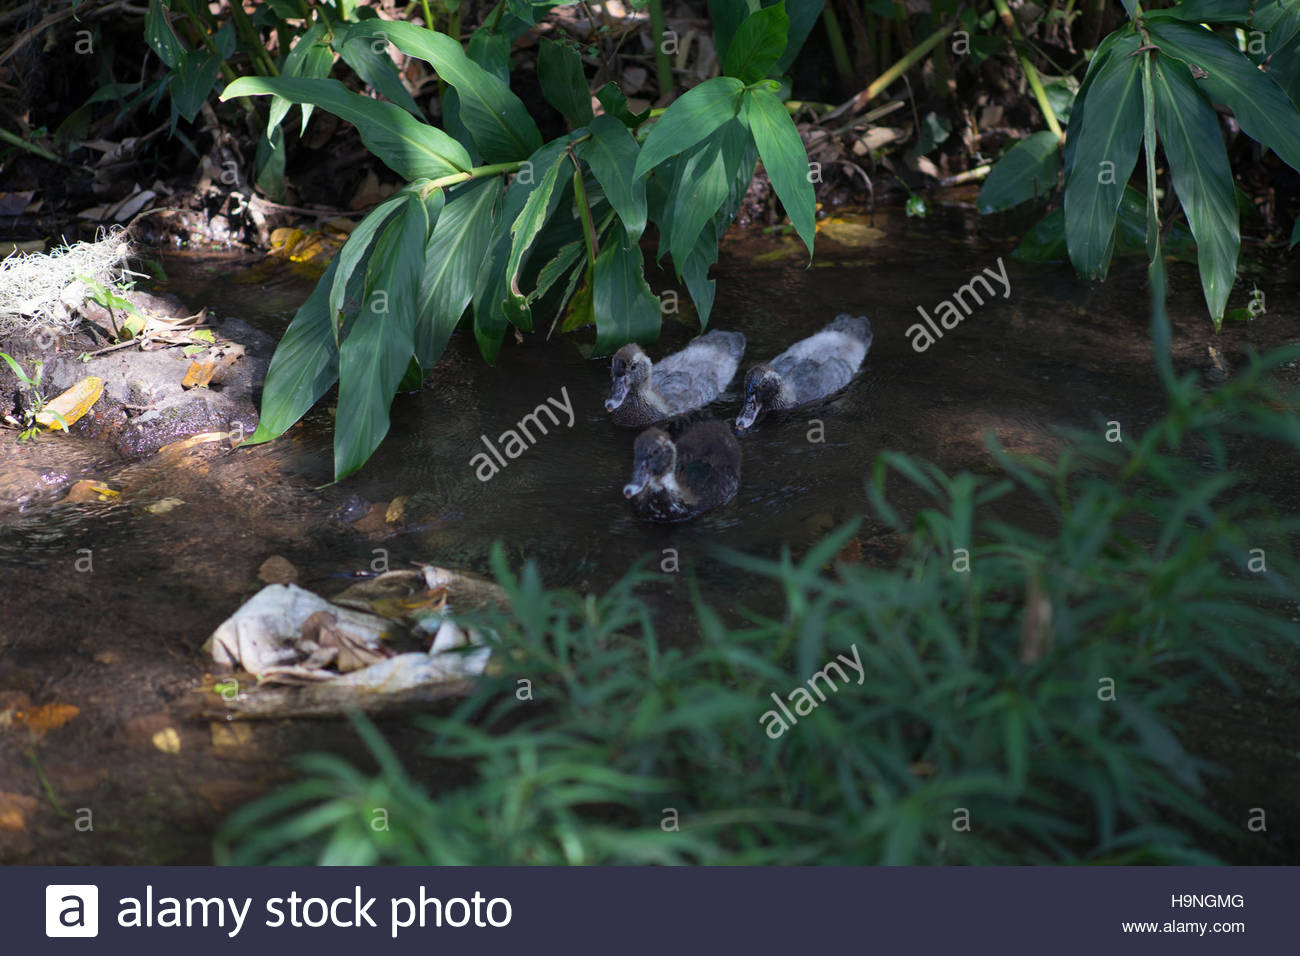 Three half grown ducklings swimming in a Nicaragua coffee country stream. - Stock Image